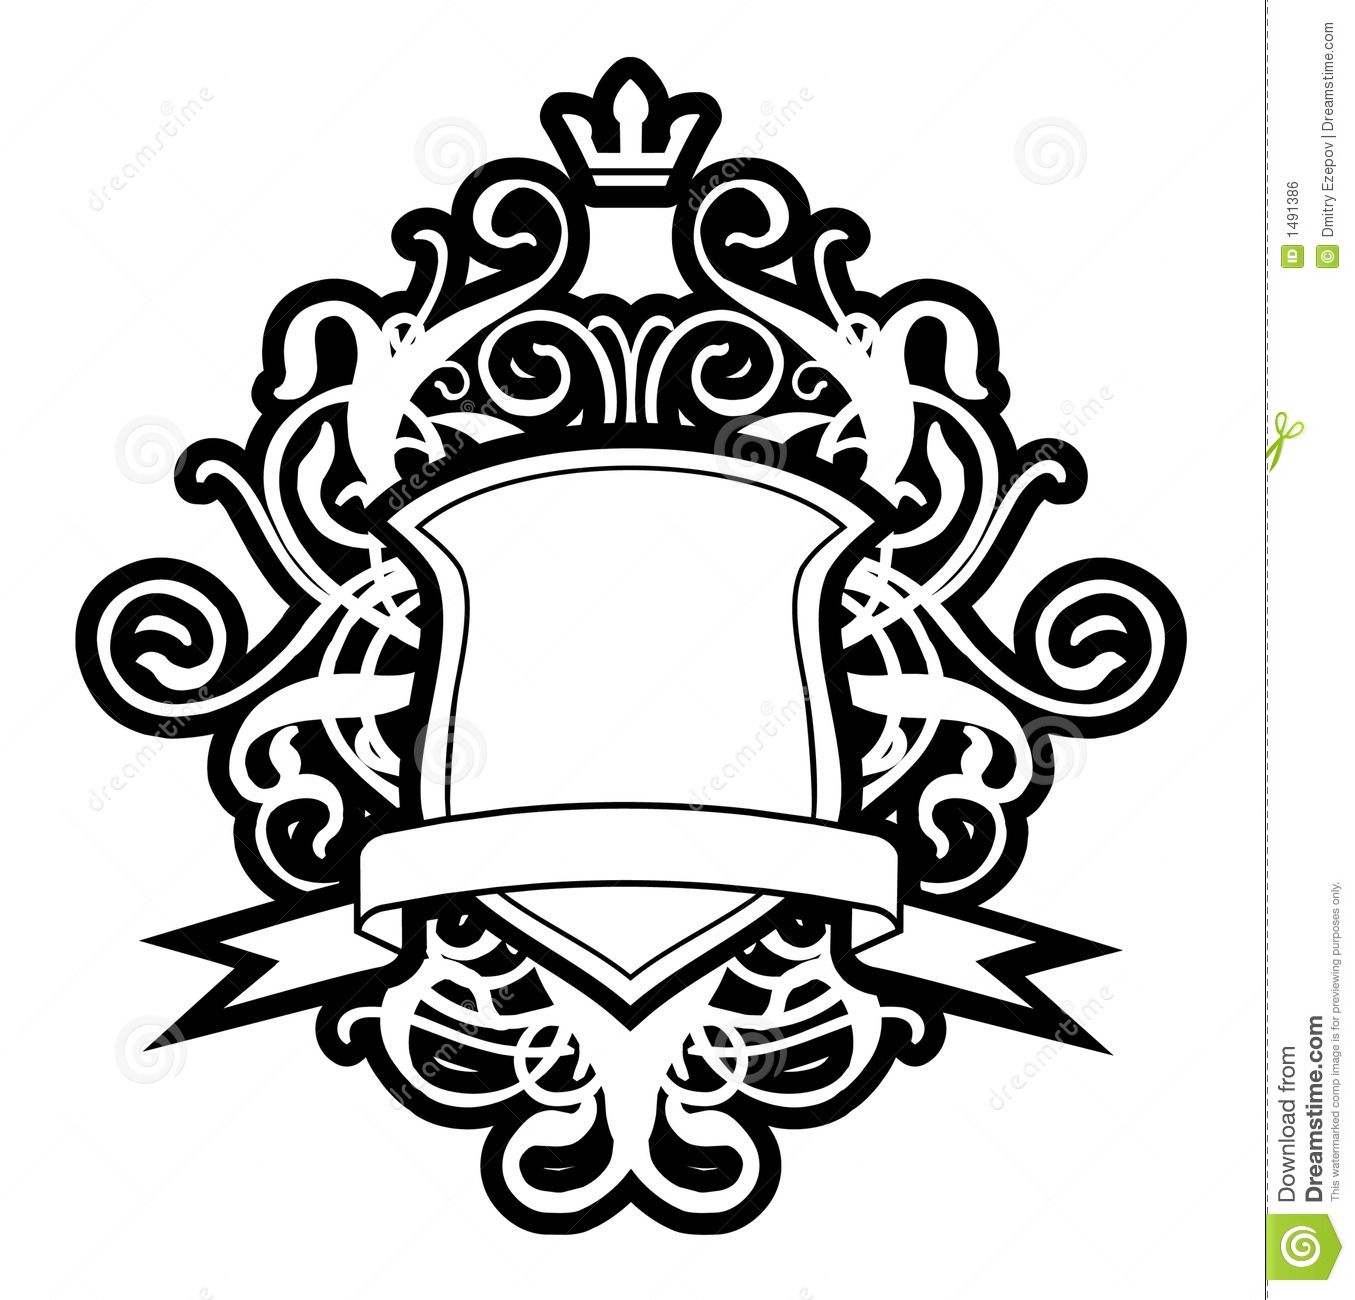 Coat of arms stock vector. Illustration of board, line ...